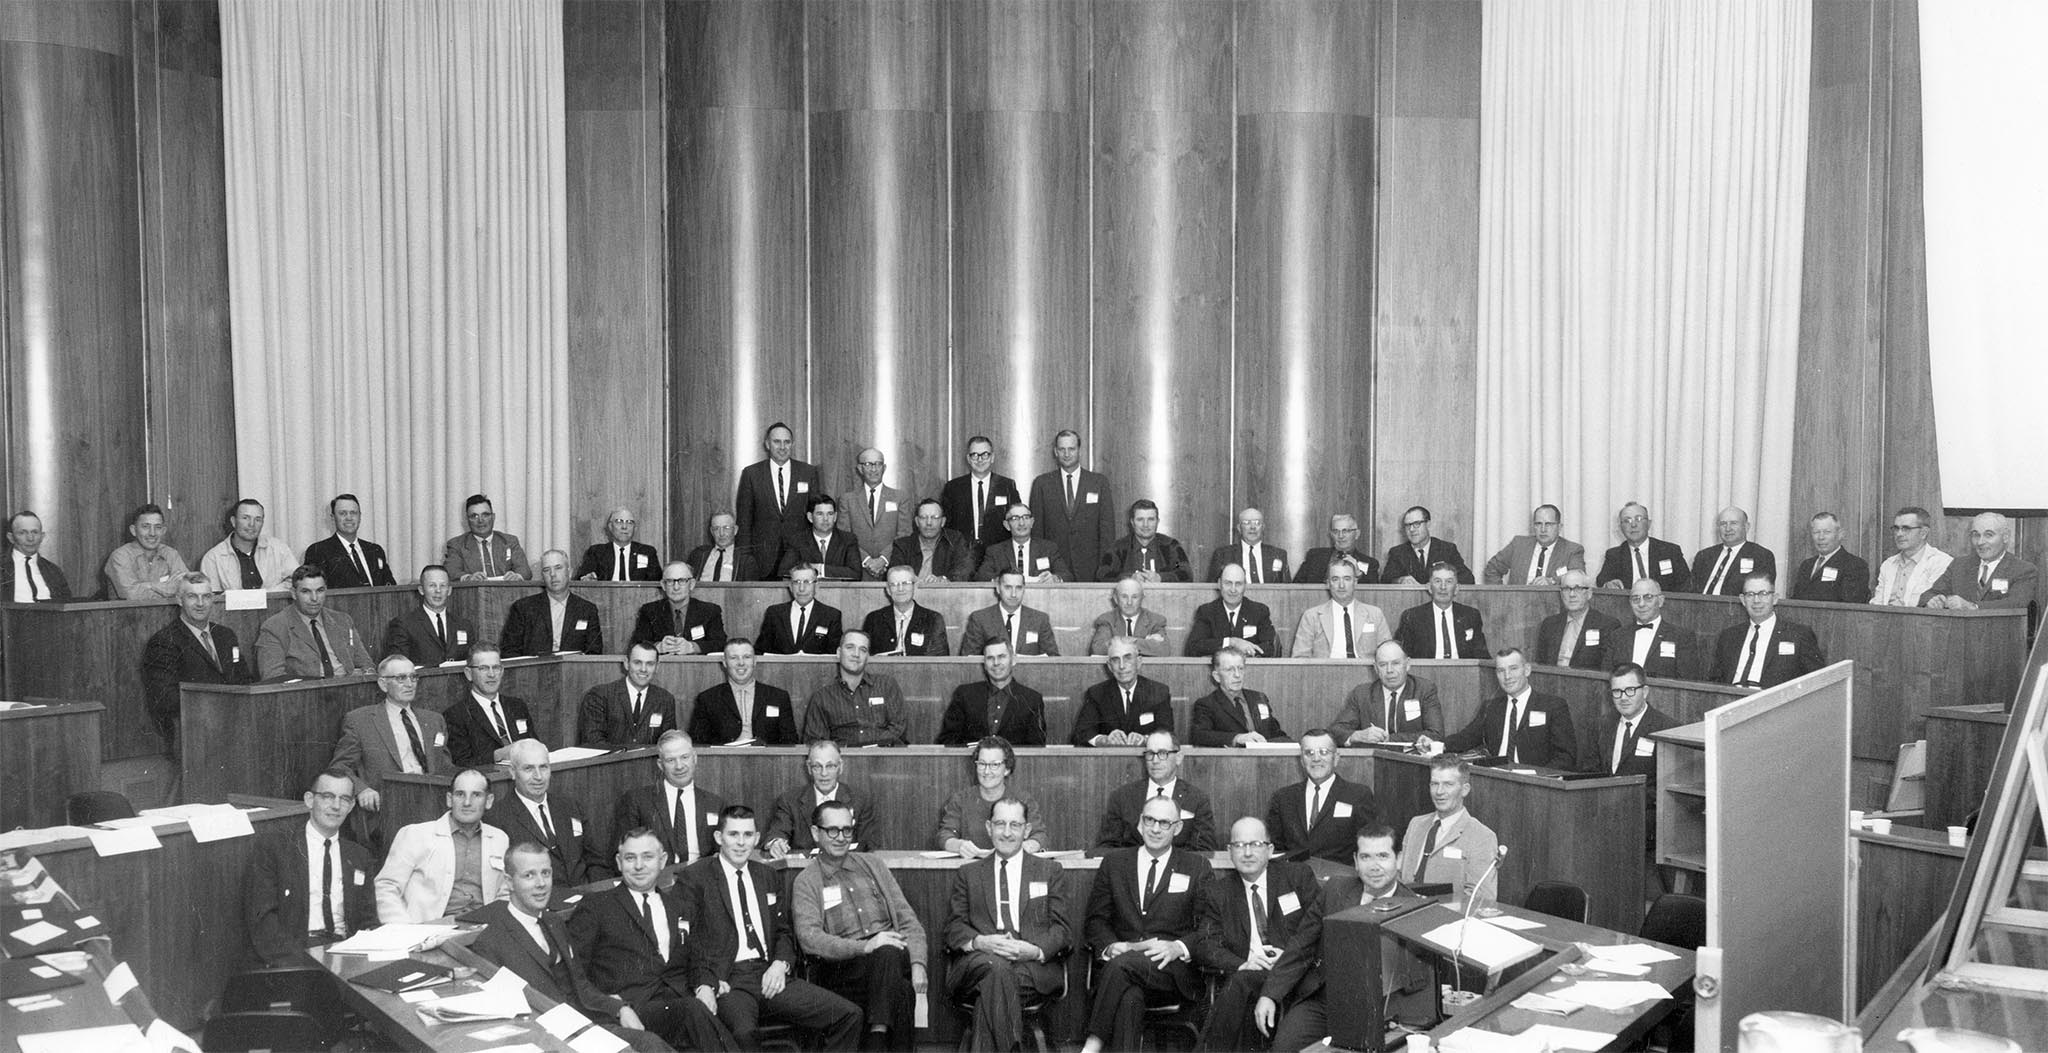 In March 1965, the OKFB Board appointed a 22-member program study committee to assess the functionality of the organization and find ways to better serve the needs of members. A special conference of county presidents, pictured here, was then held at the Center for Continuing Education at the University of Oklahoma to analyze the recommendations. After conference attendees endorsed the report, a special session of voting delegates approved the recommended proposal to increase Farm Bureau membership dues to a minimum of $15 in order to finance a portion of the expanded program.